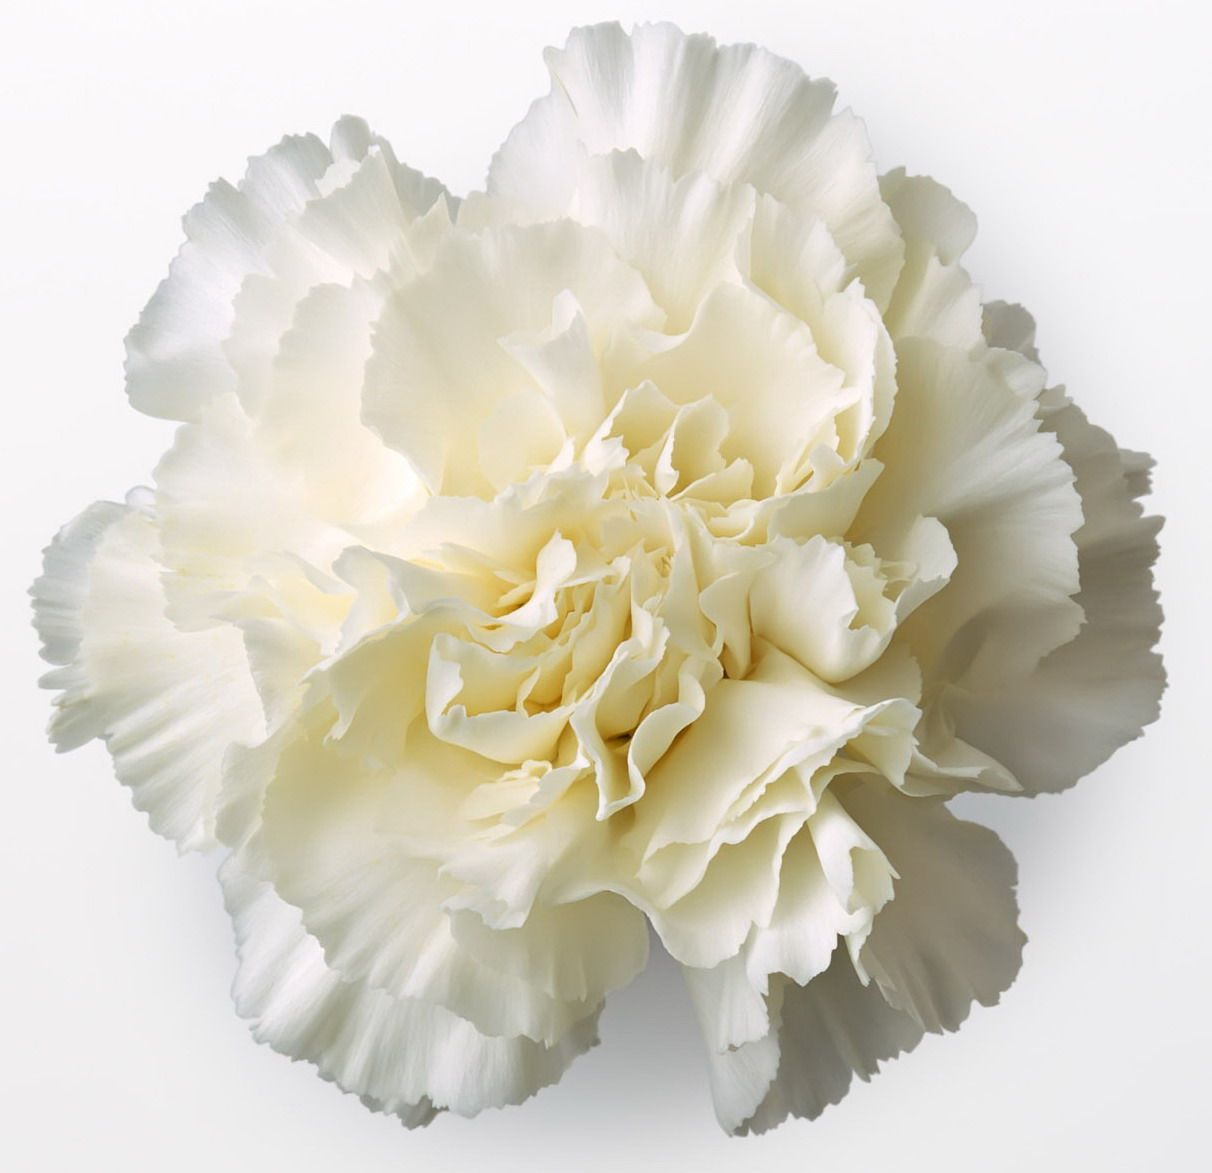 White Carnations In Flower Tags Carnation White Carnation